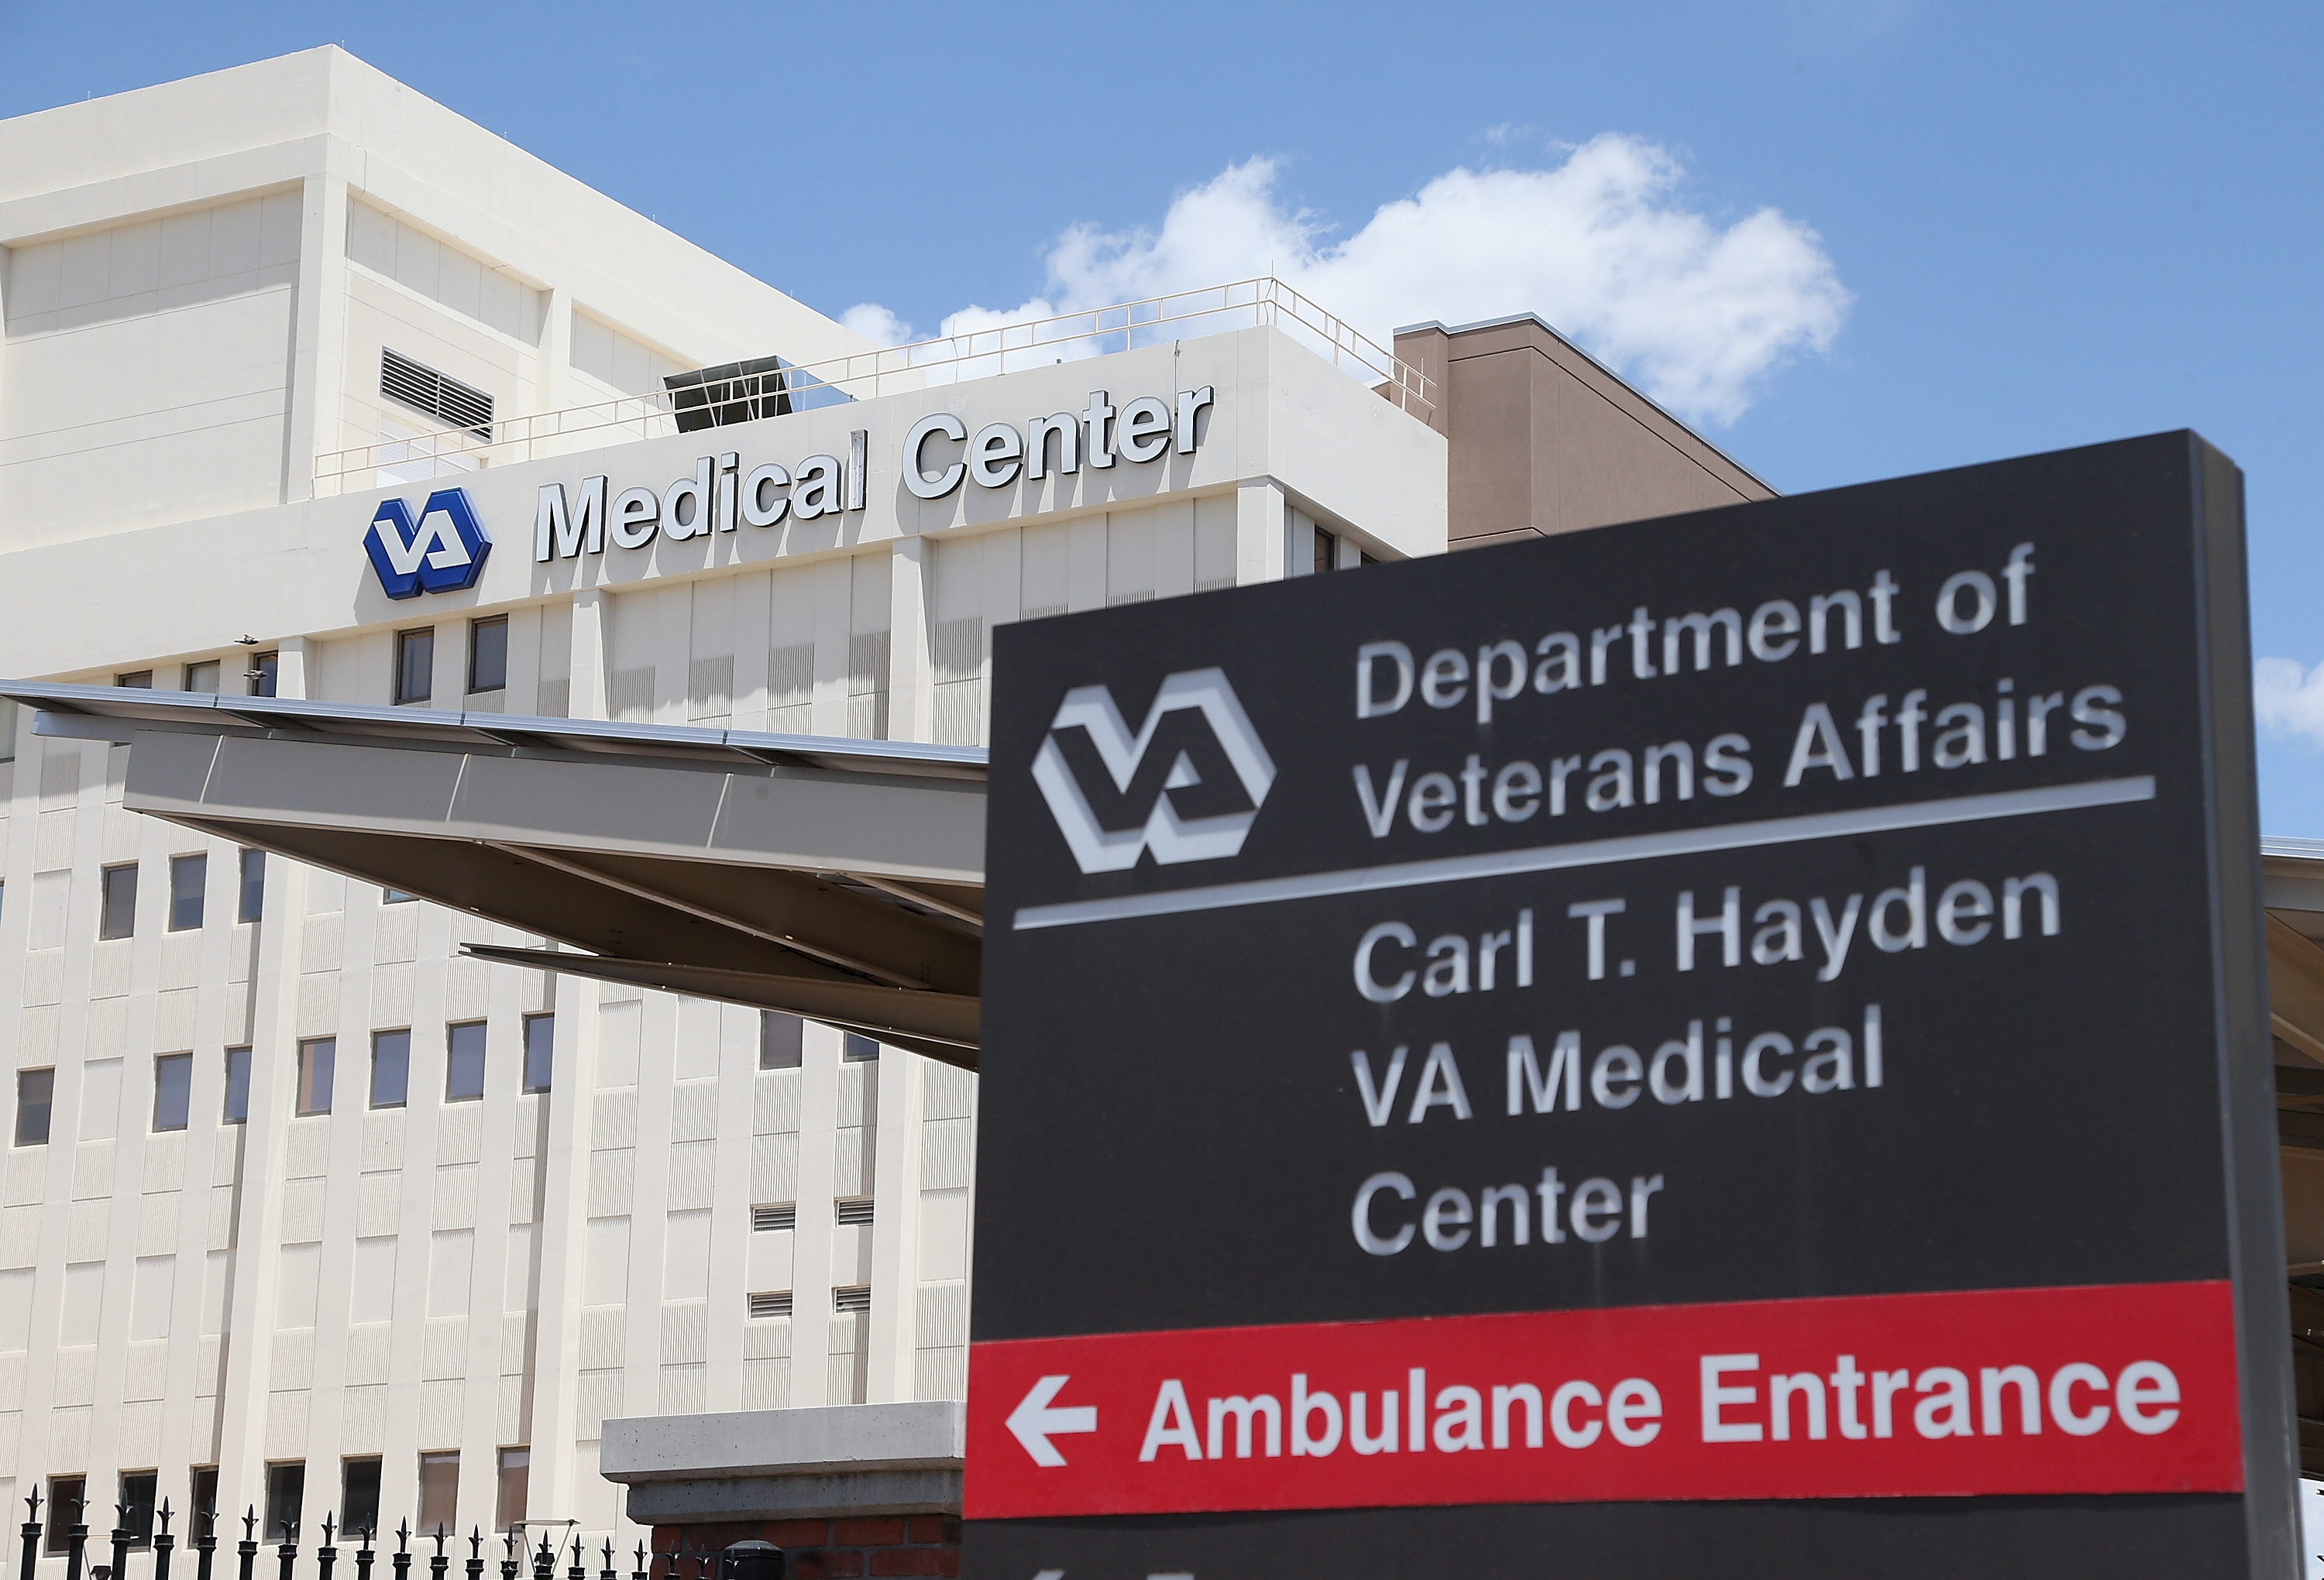 The Veterans Affairs Medical Center on May 8, 2014 in Phoenix, Arizona.